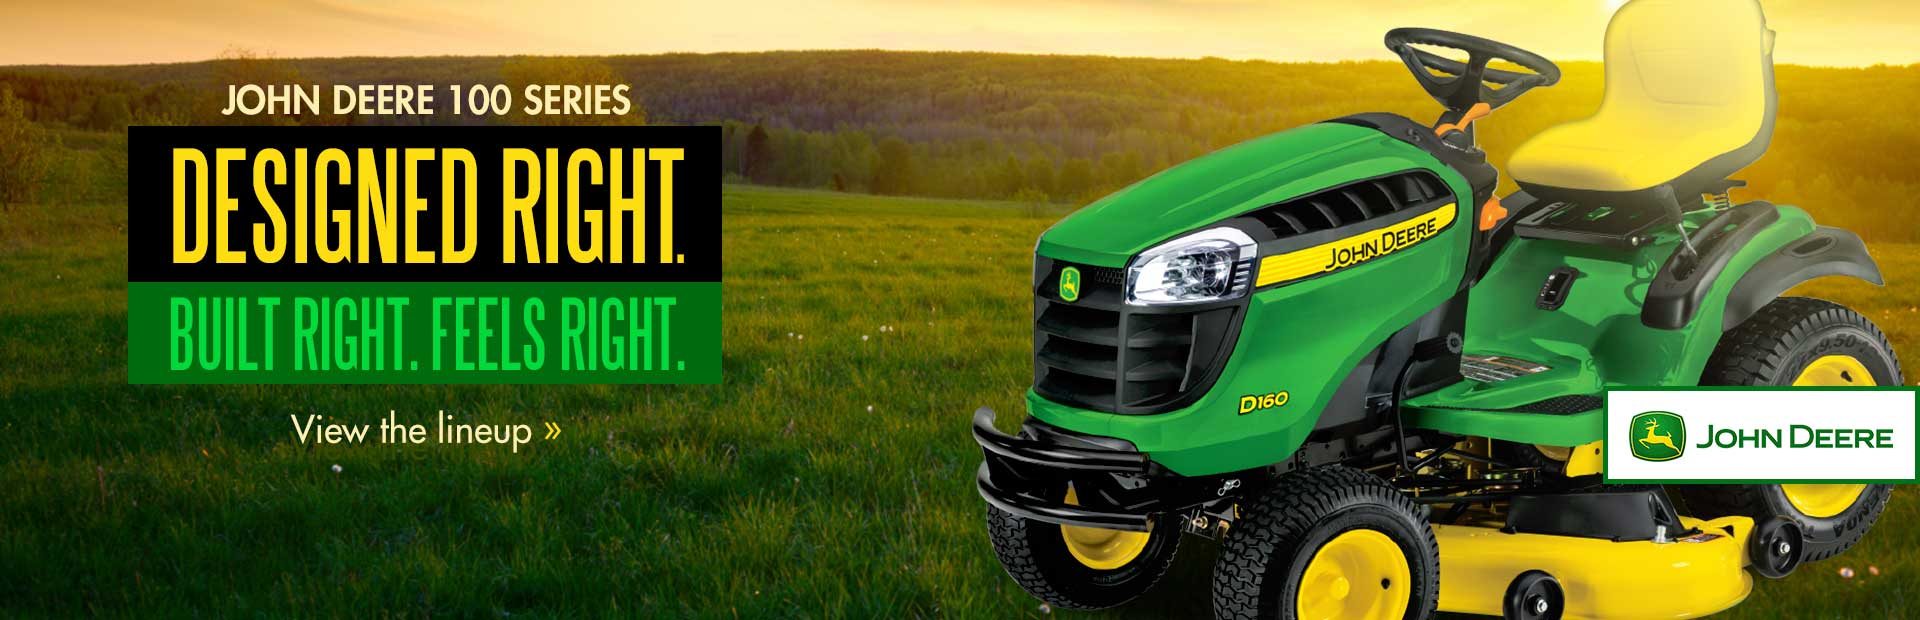 John Deere 100 Series: Click here to view the lineup.